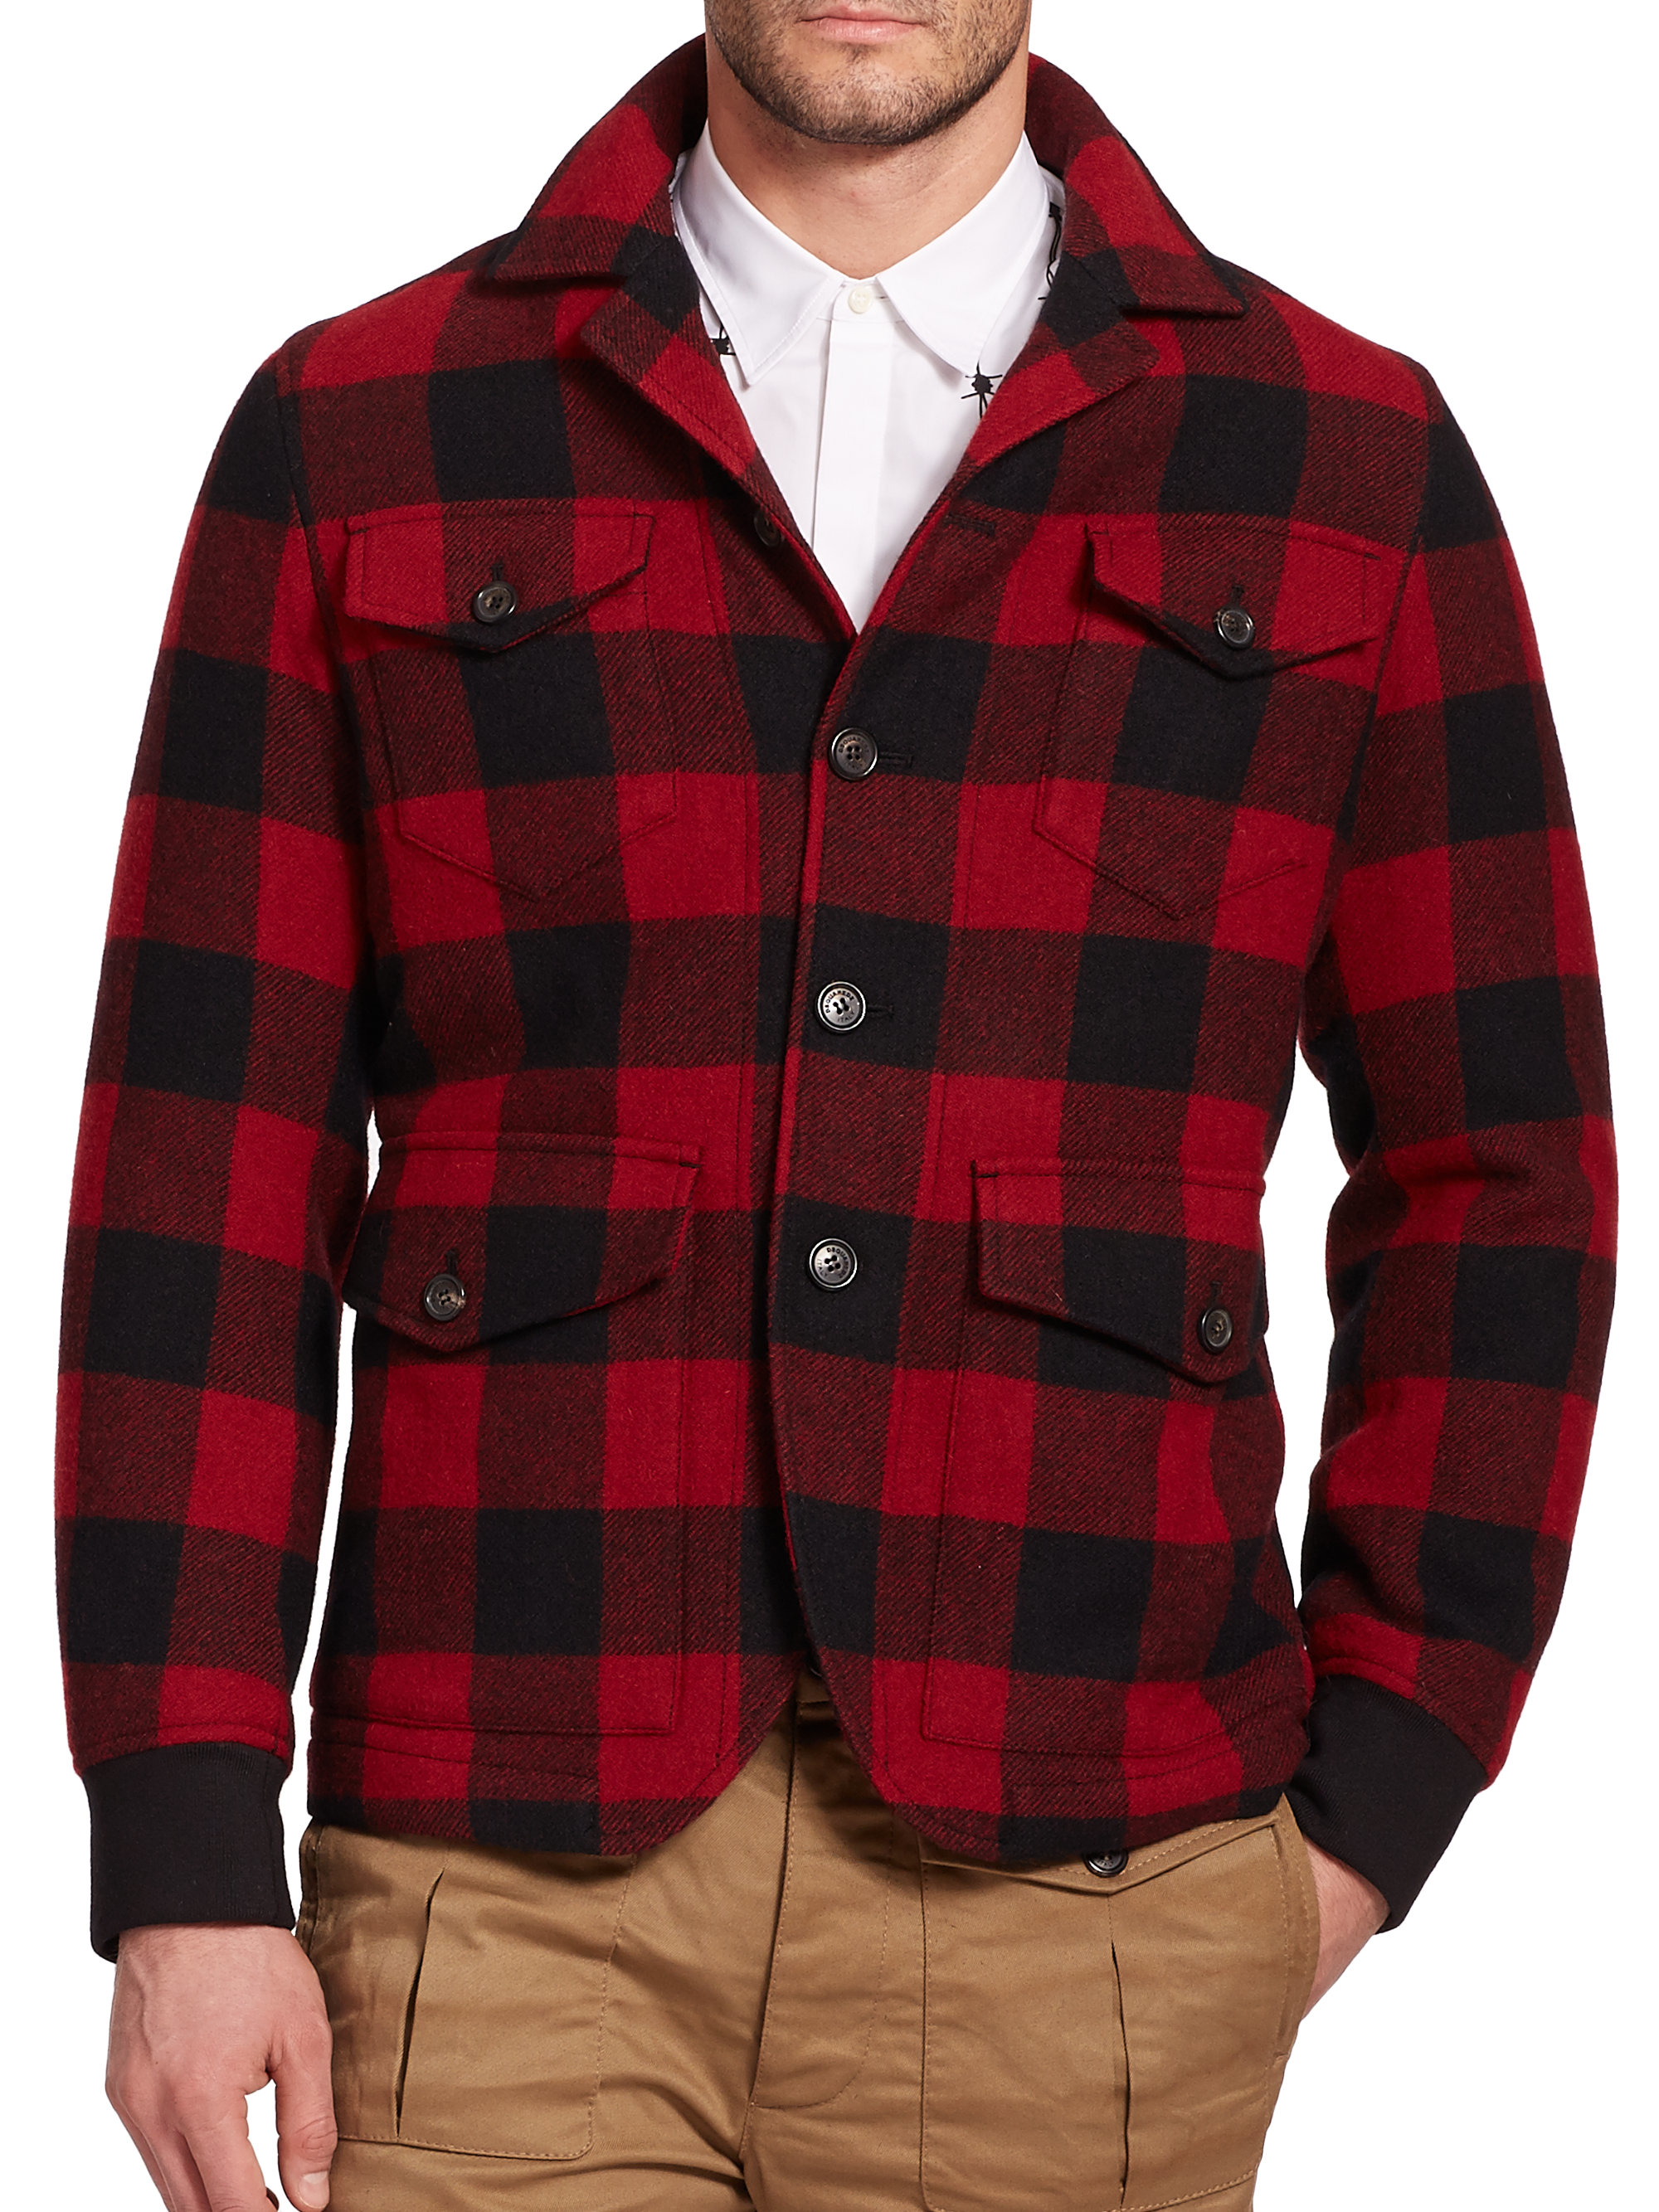 Mens plaid wool coats images for Mens red wool shirt